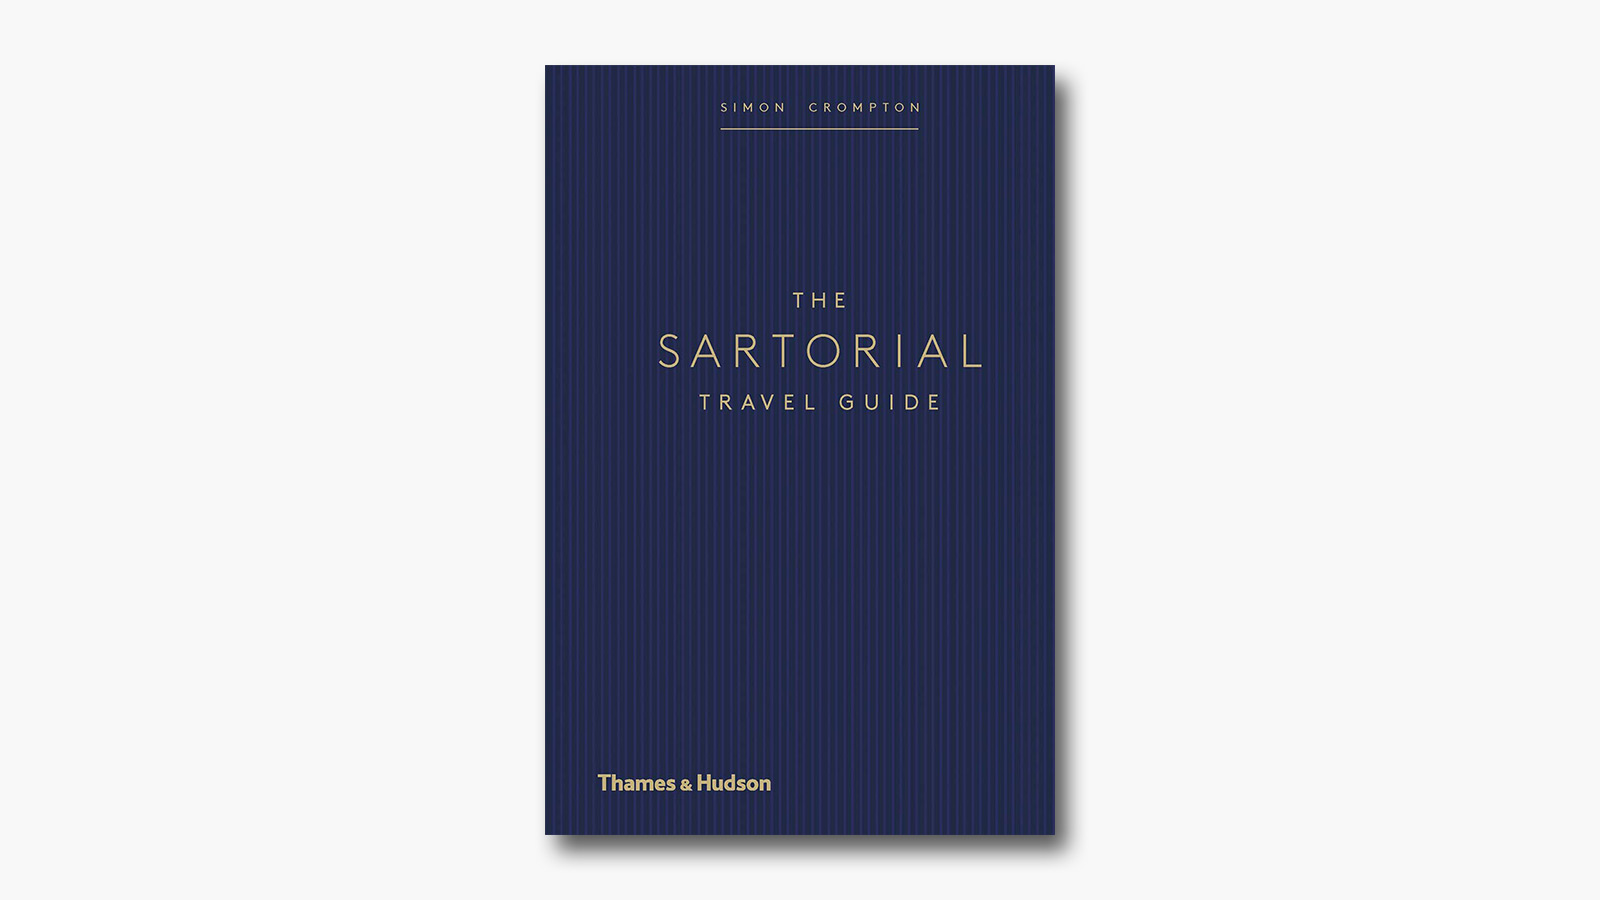 'The Sartorial Travel Guide'by Simon Crompton